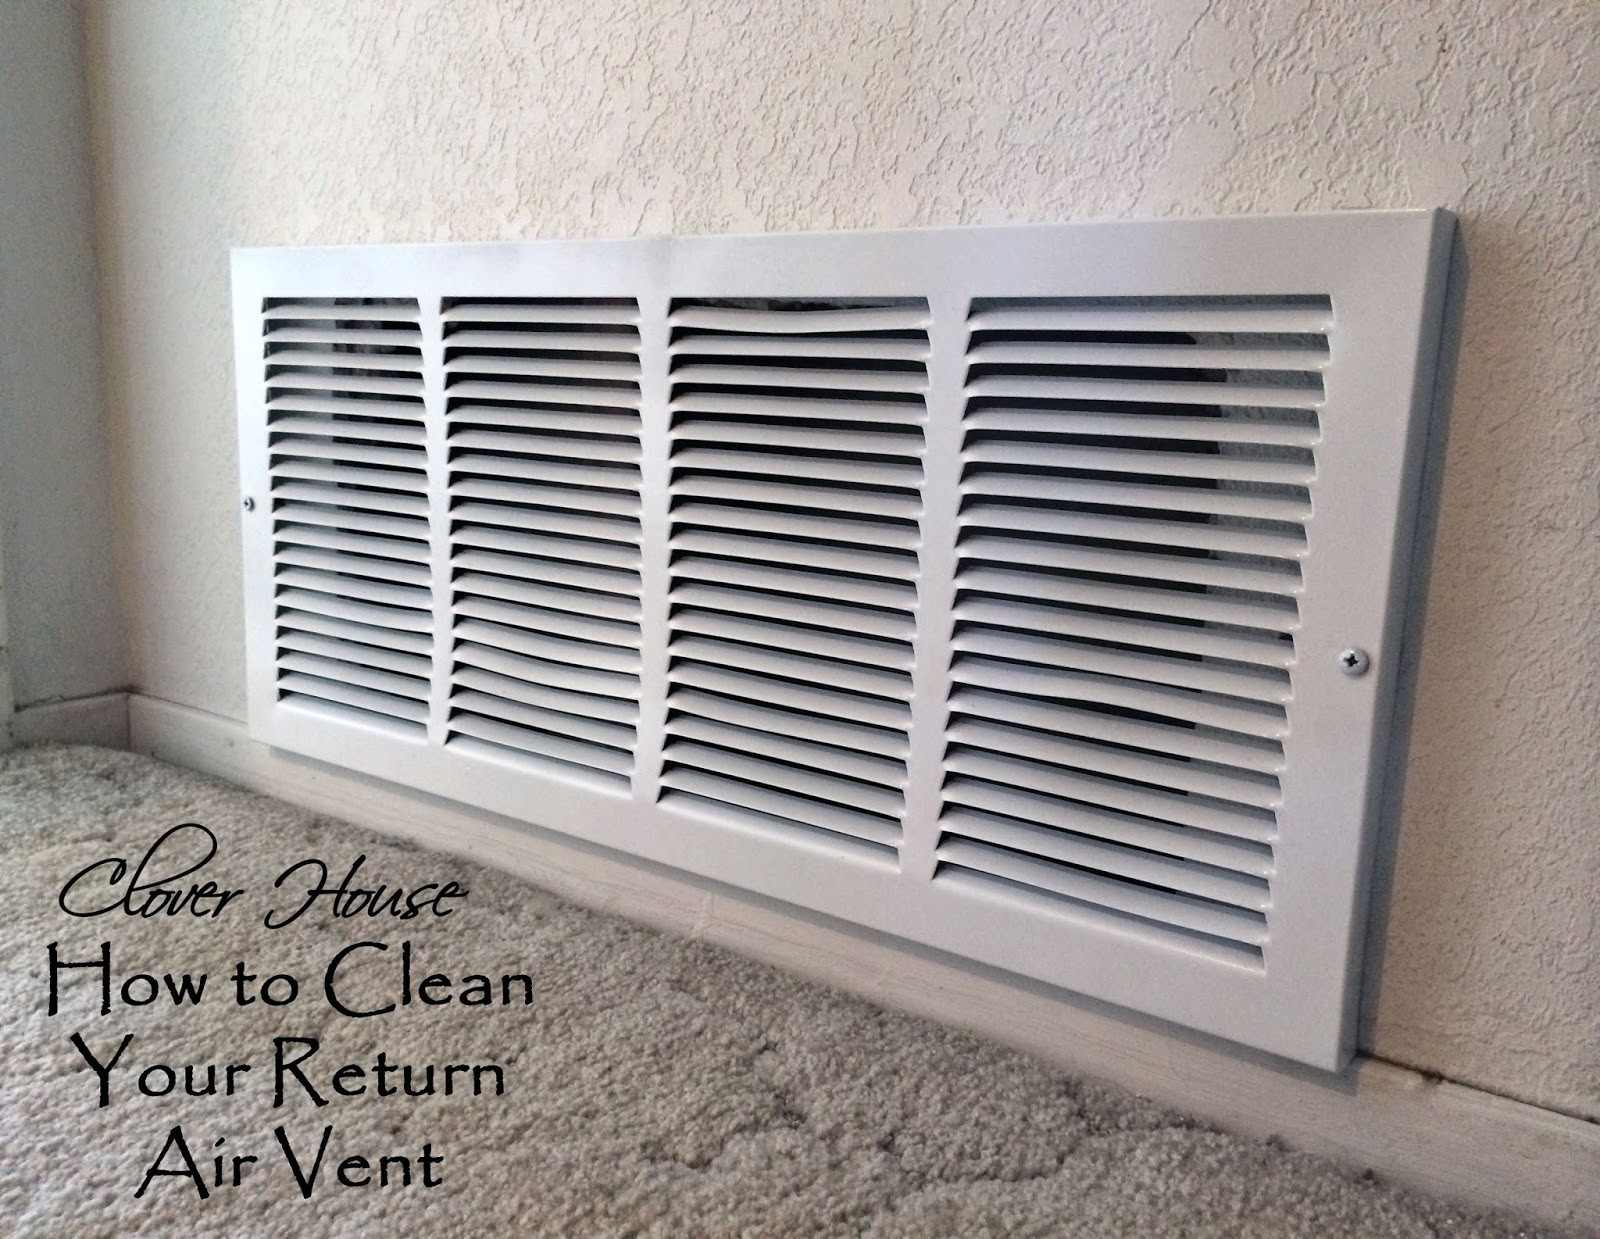 Mold On Ac Vent >> Clover House: How to Clean Your Return Air Vent